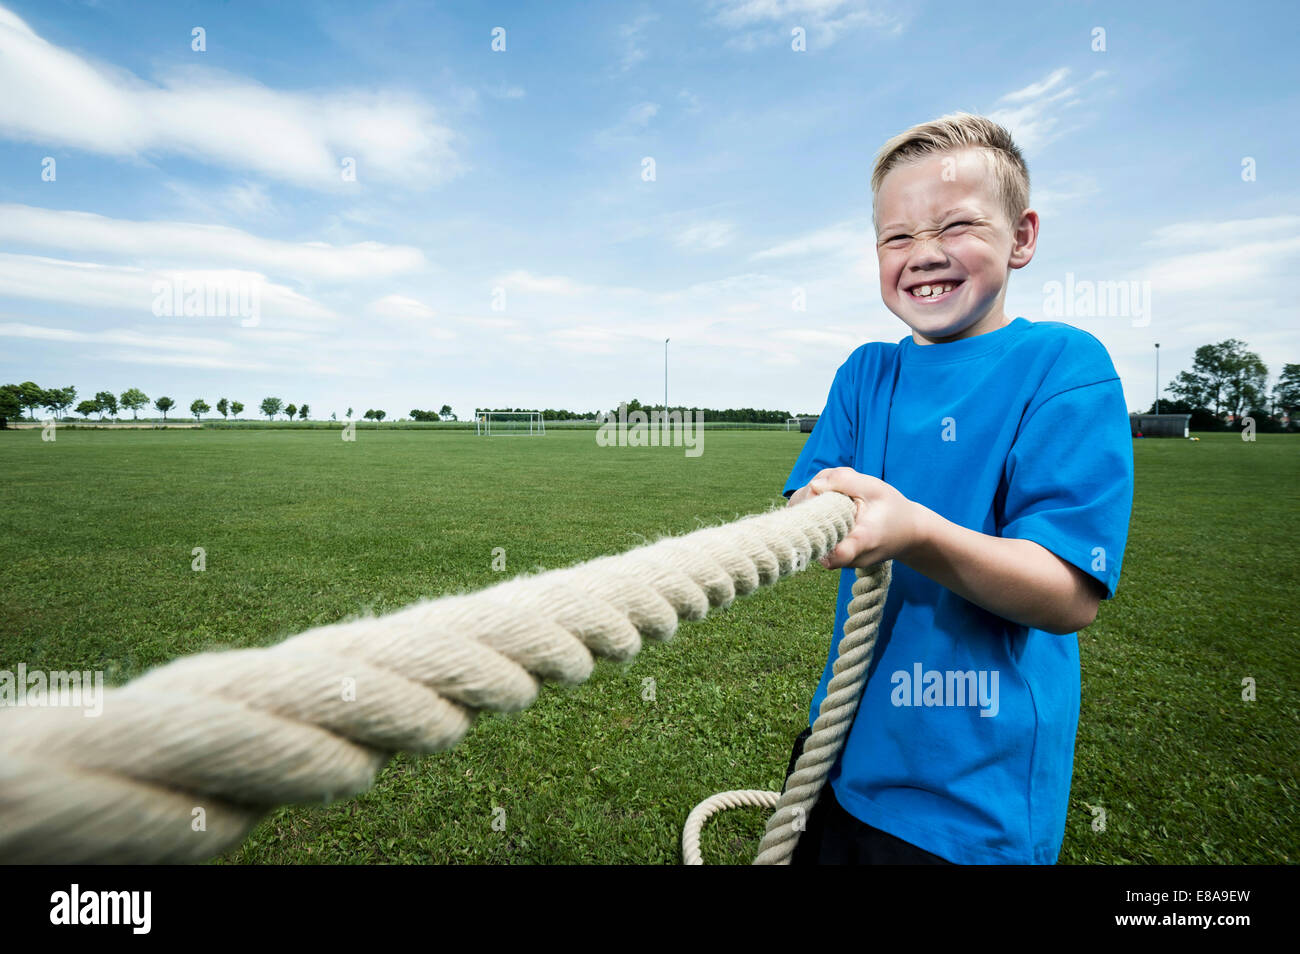 Young strong boy holding rope Tug-of-war strength - Stock Image